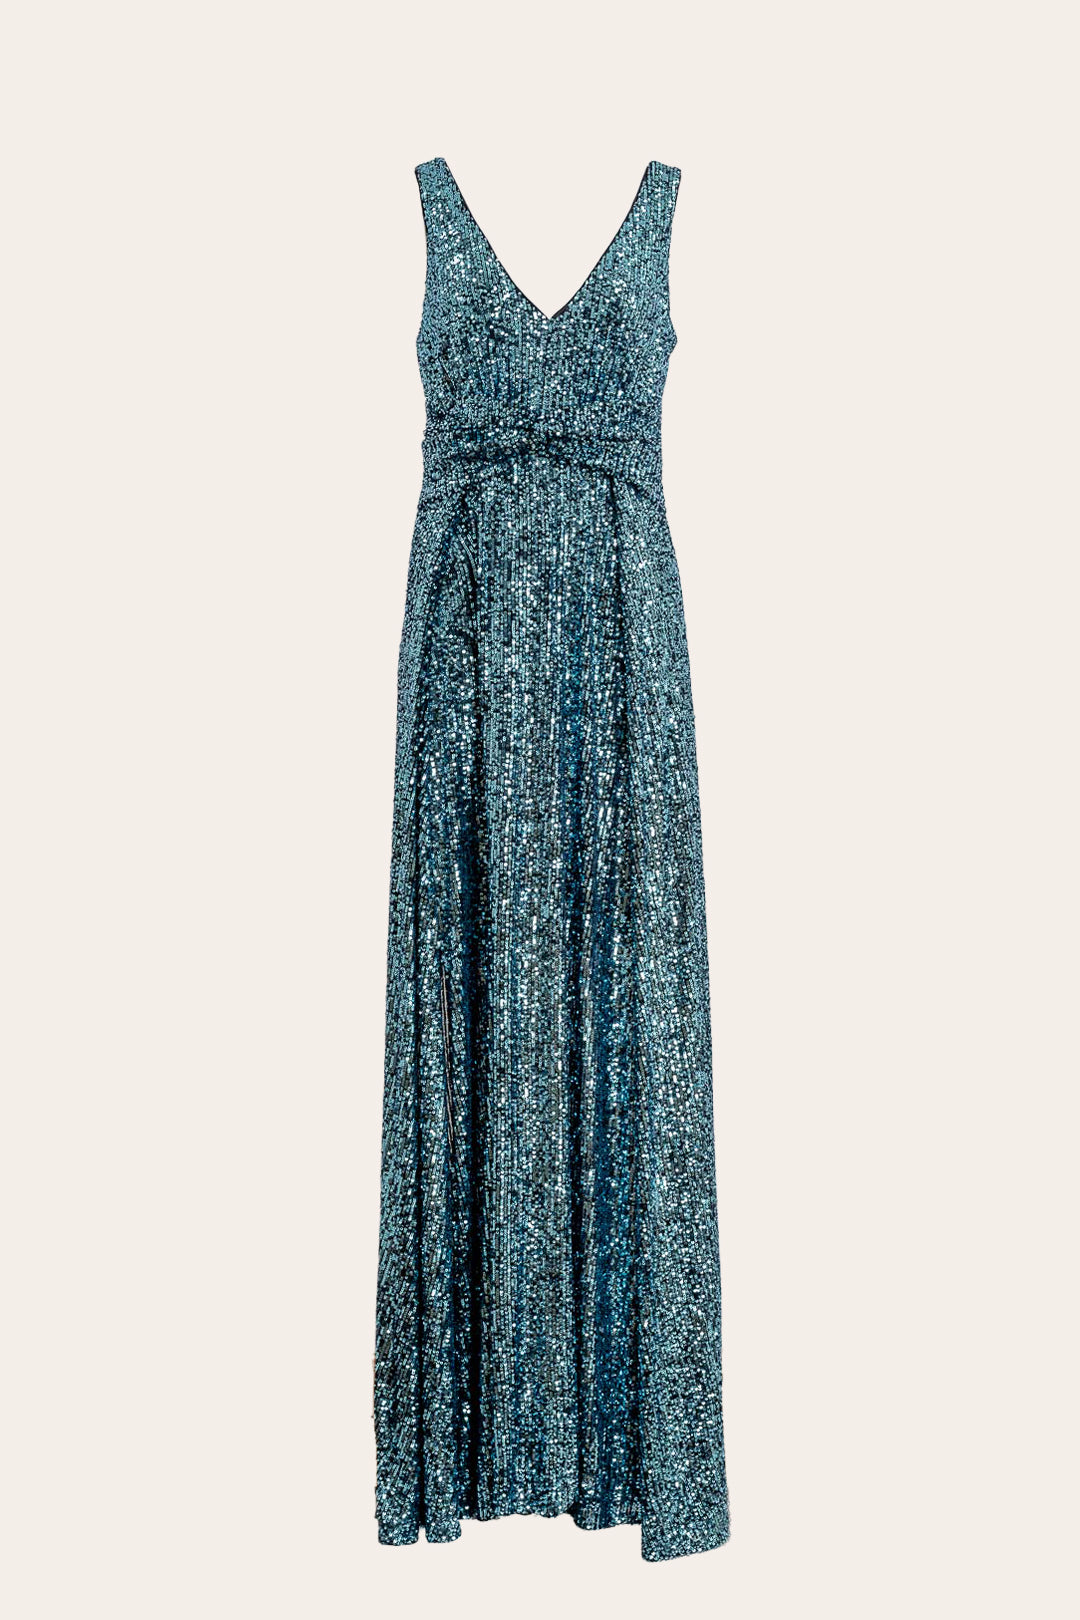 Sleeveless V-Neck Metallic Long Dress